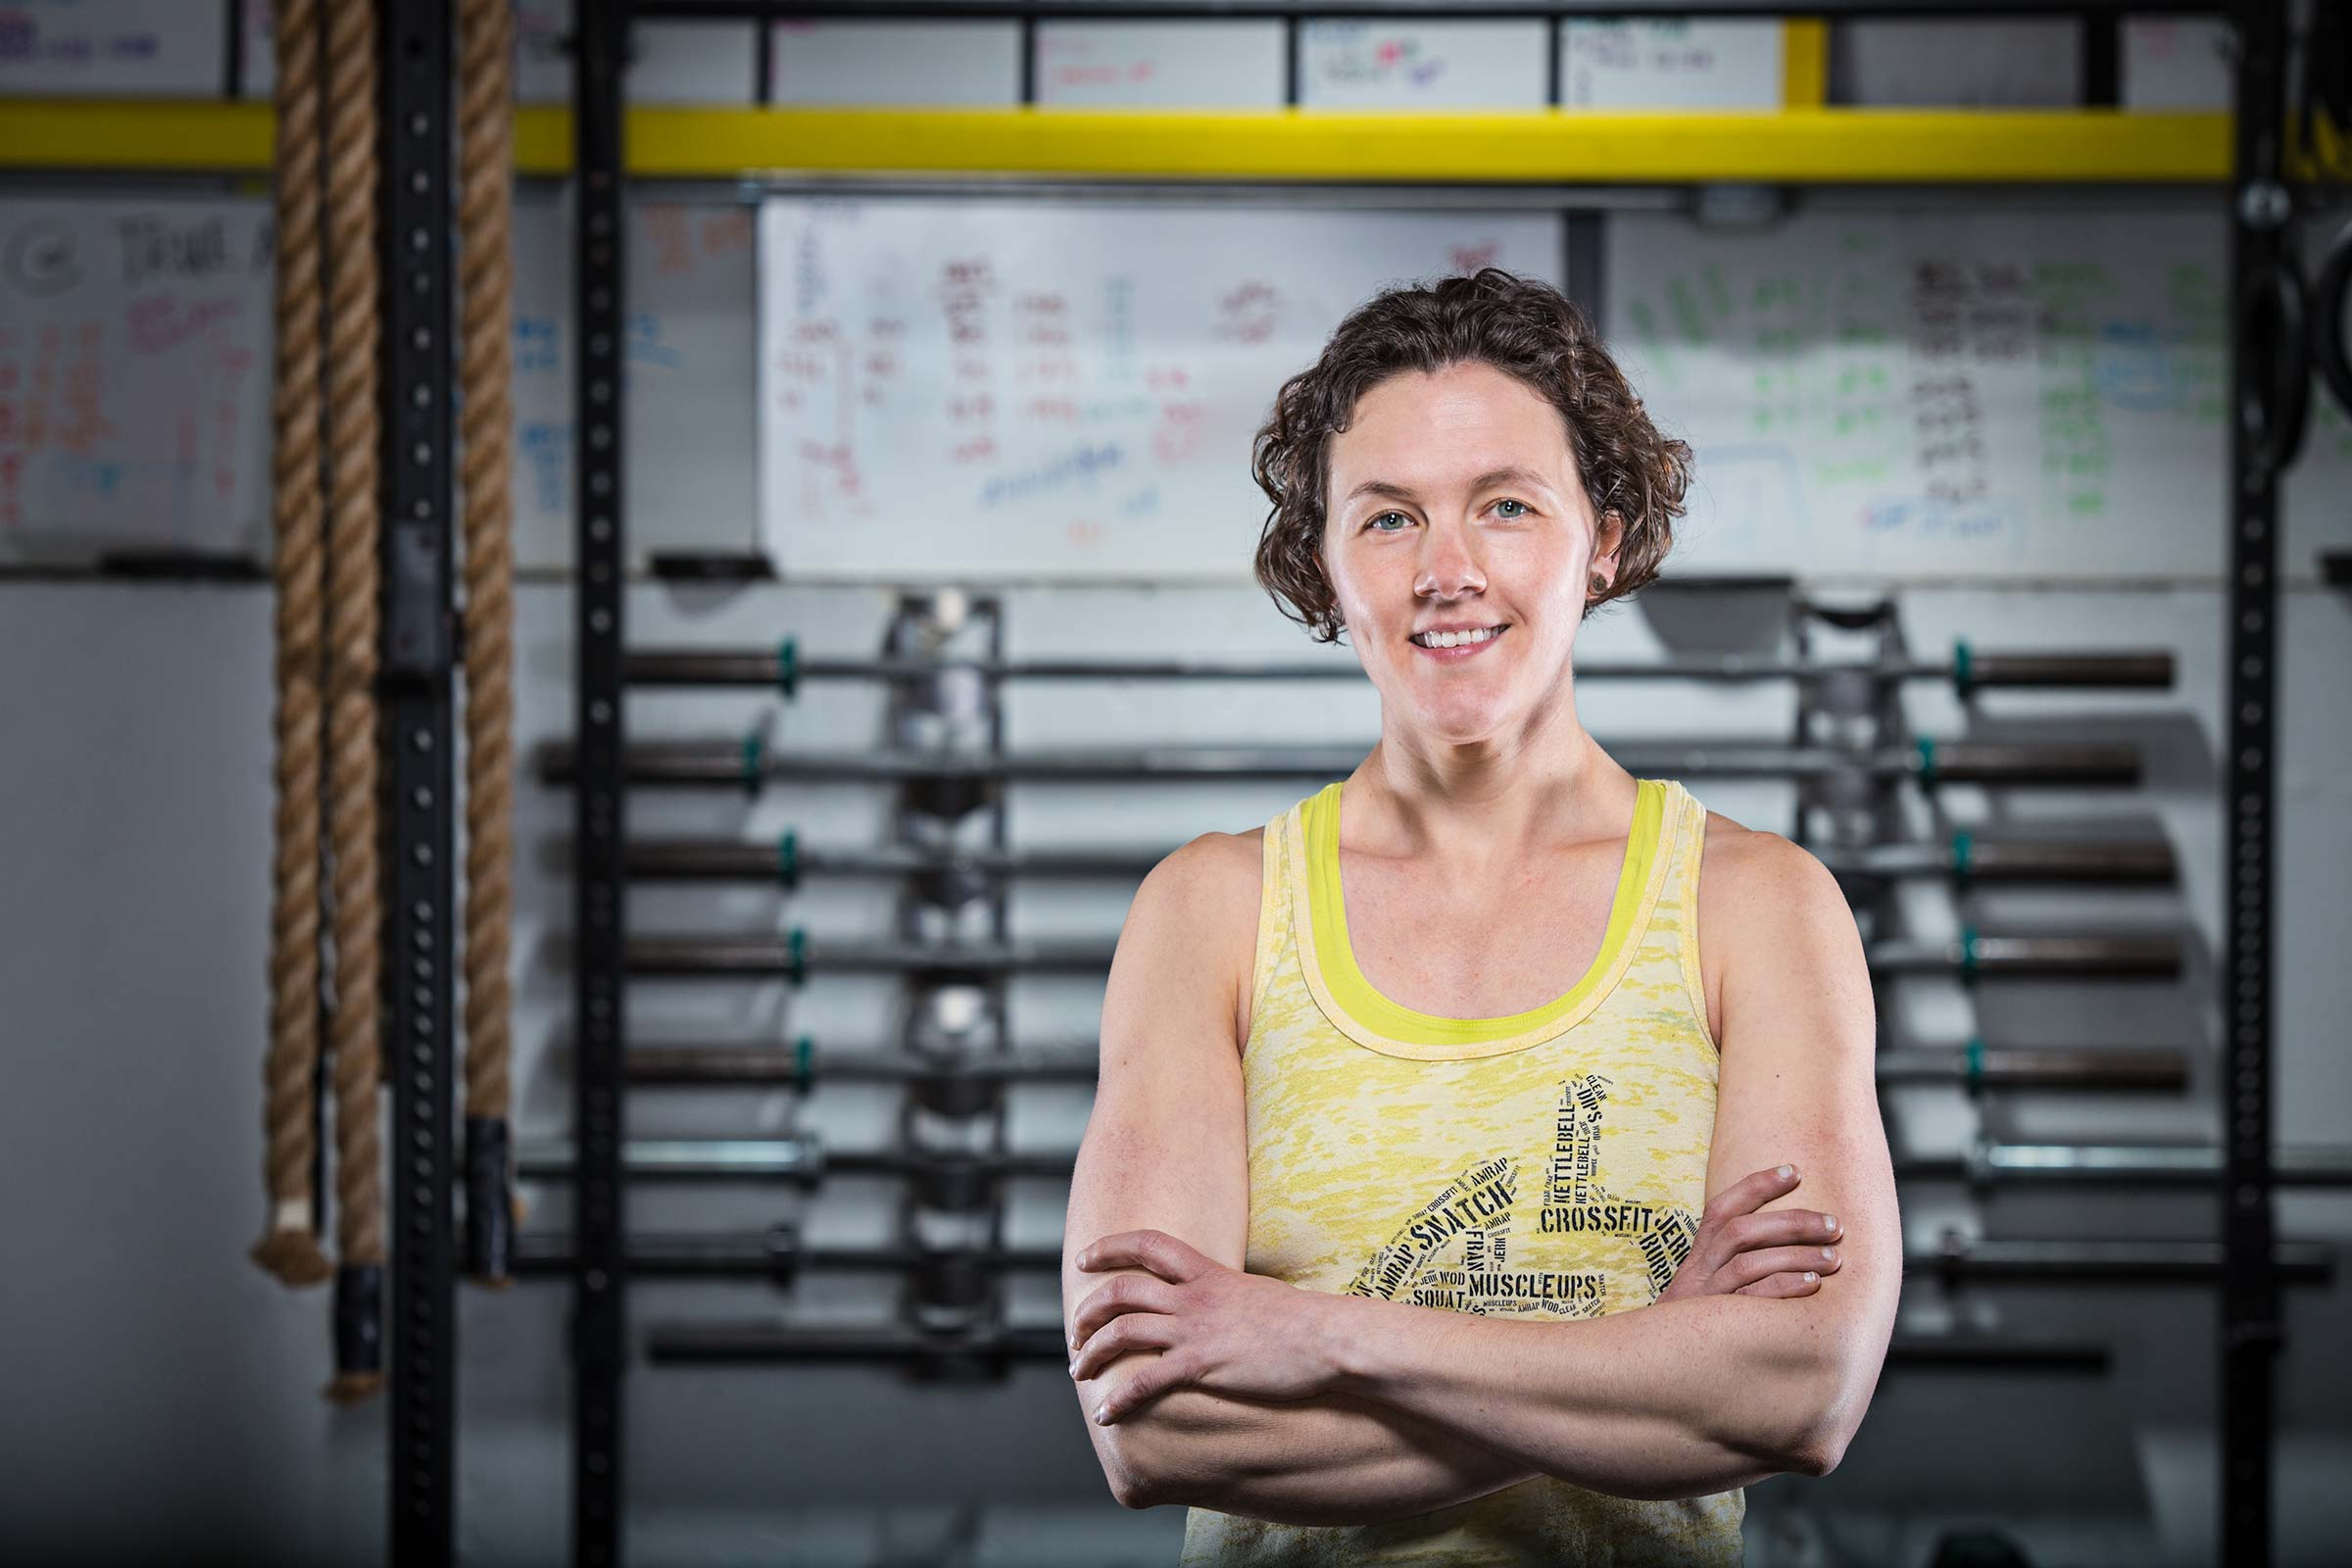 Upbeat portrait of a female crossfit trainer in front of equipment in Connecticut gym